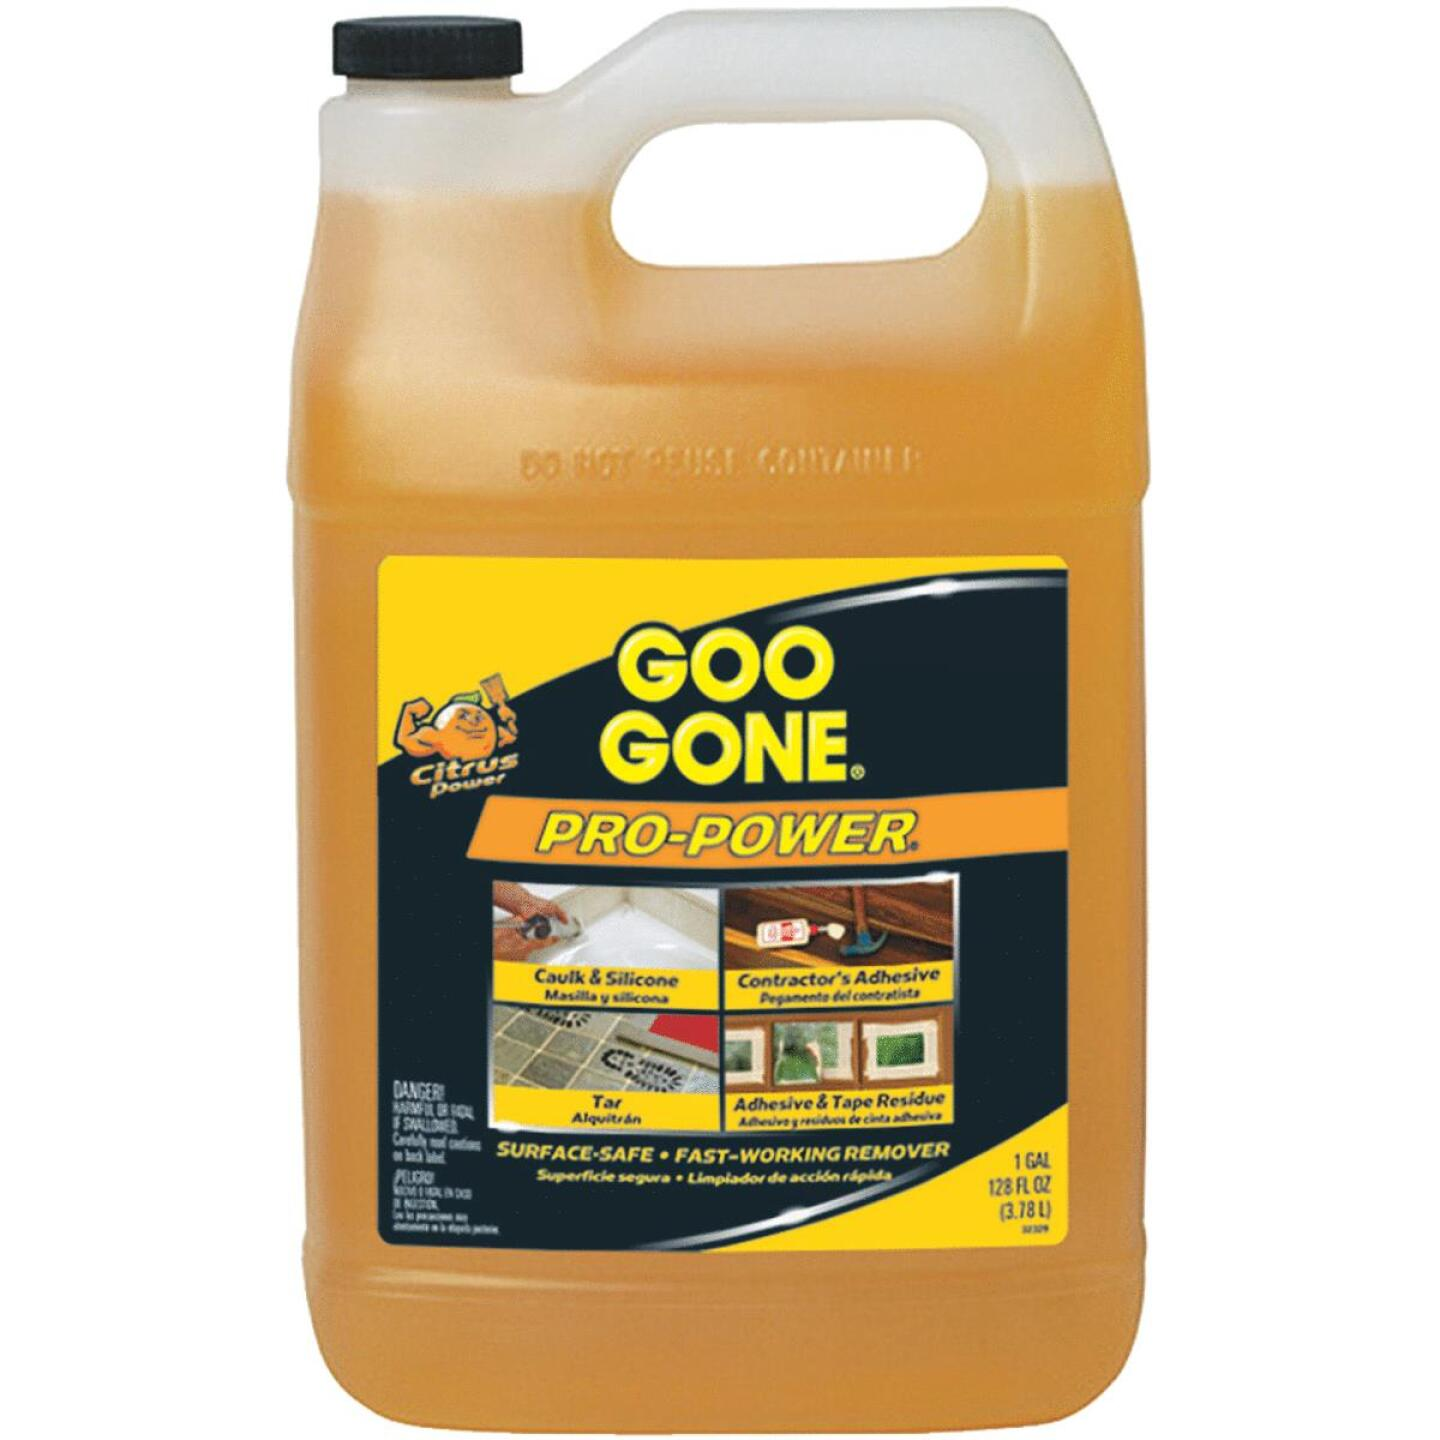 Goo Gone 1 Gal. Pro-Power Adhesive Remover Image 70